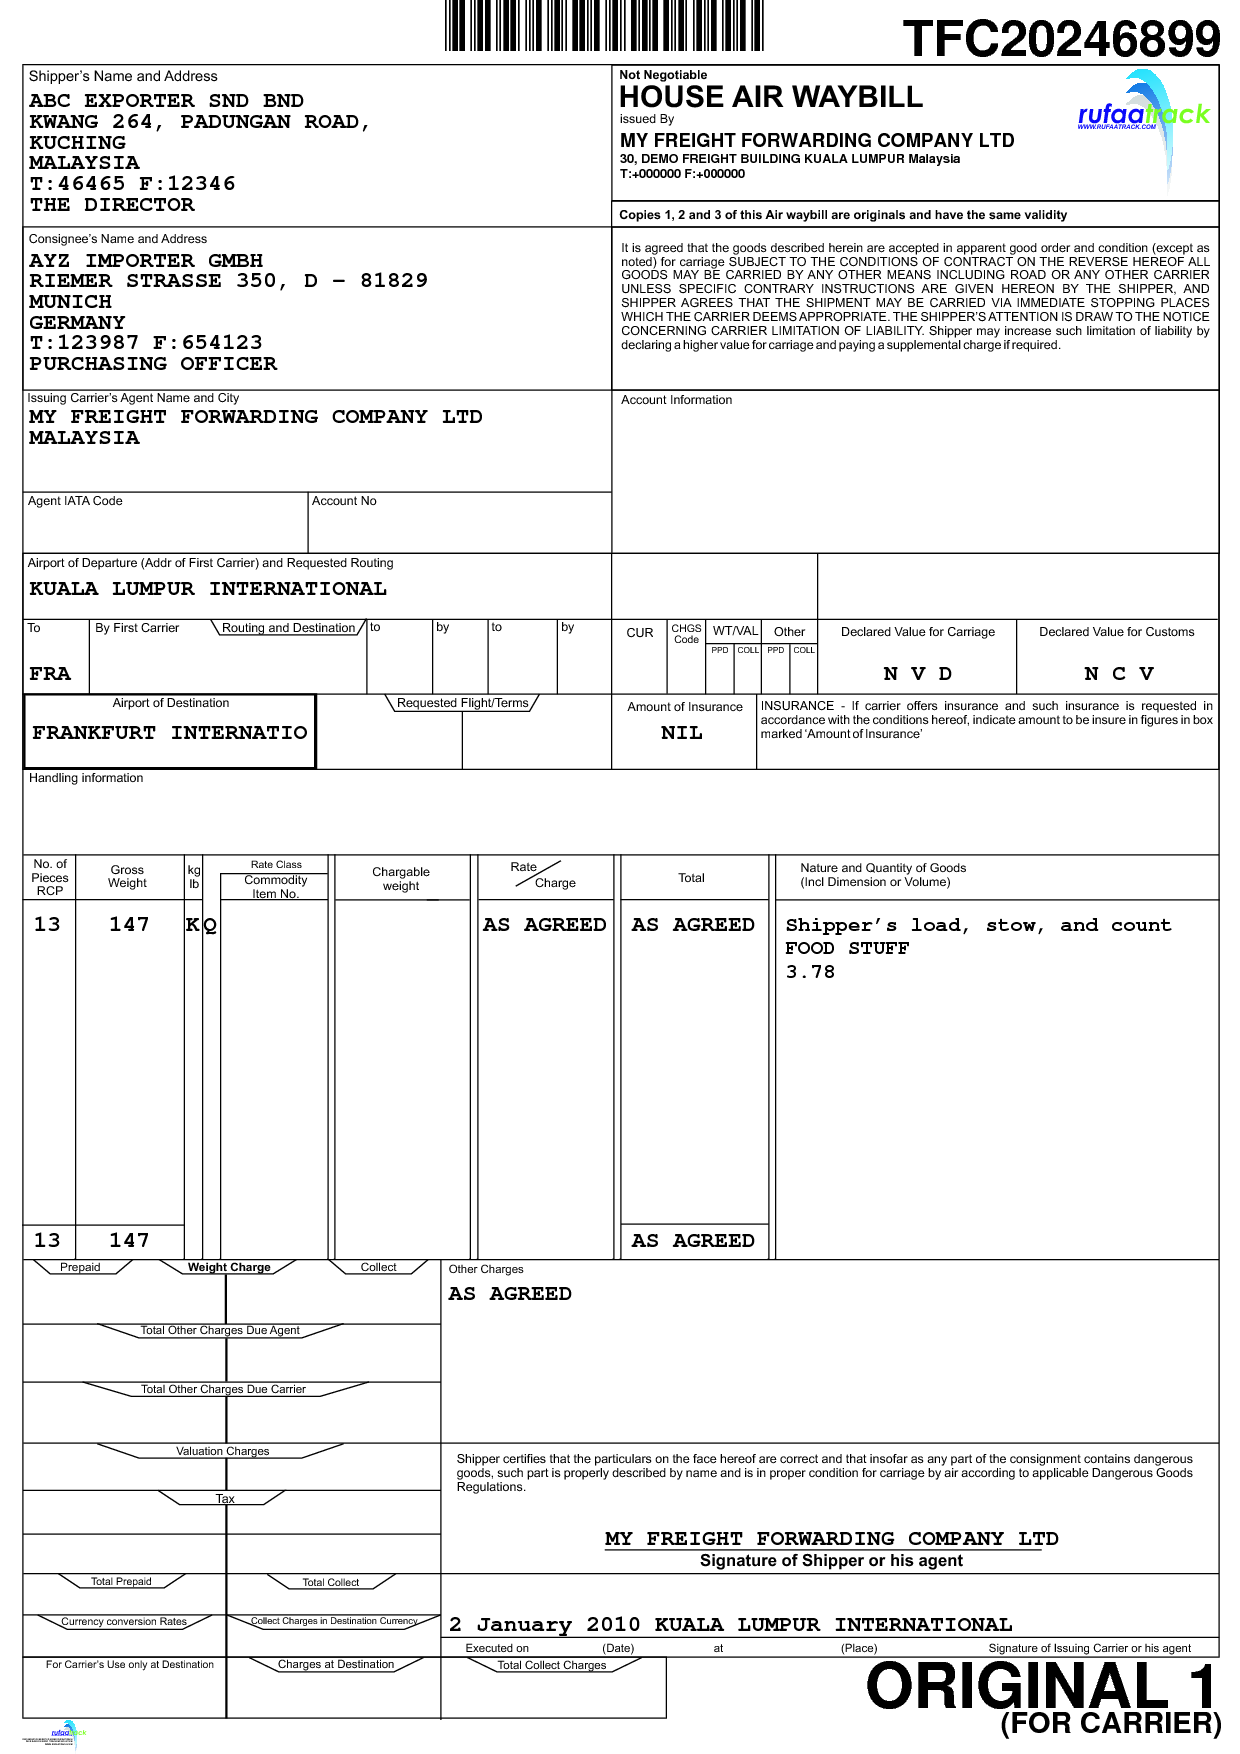 airway bill Bill template, Bills, Templates